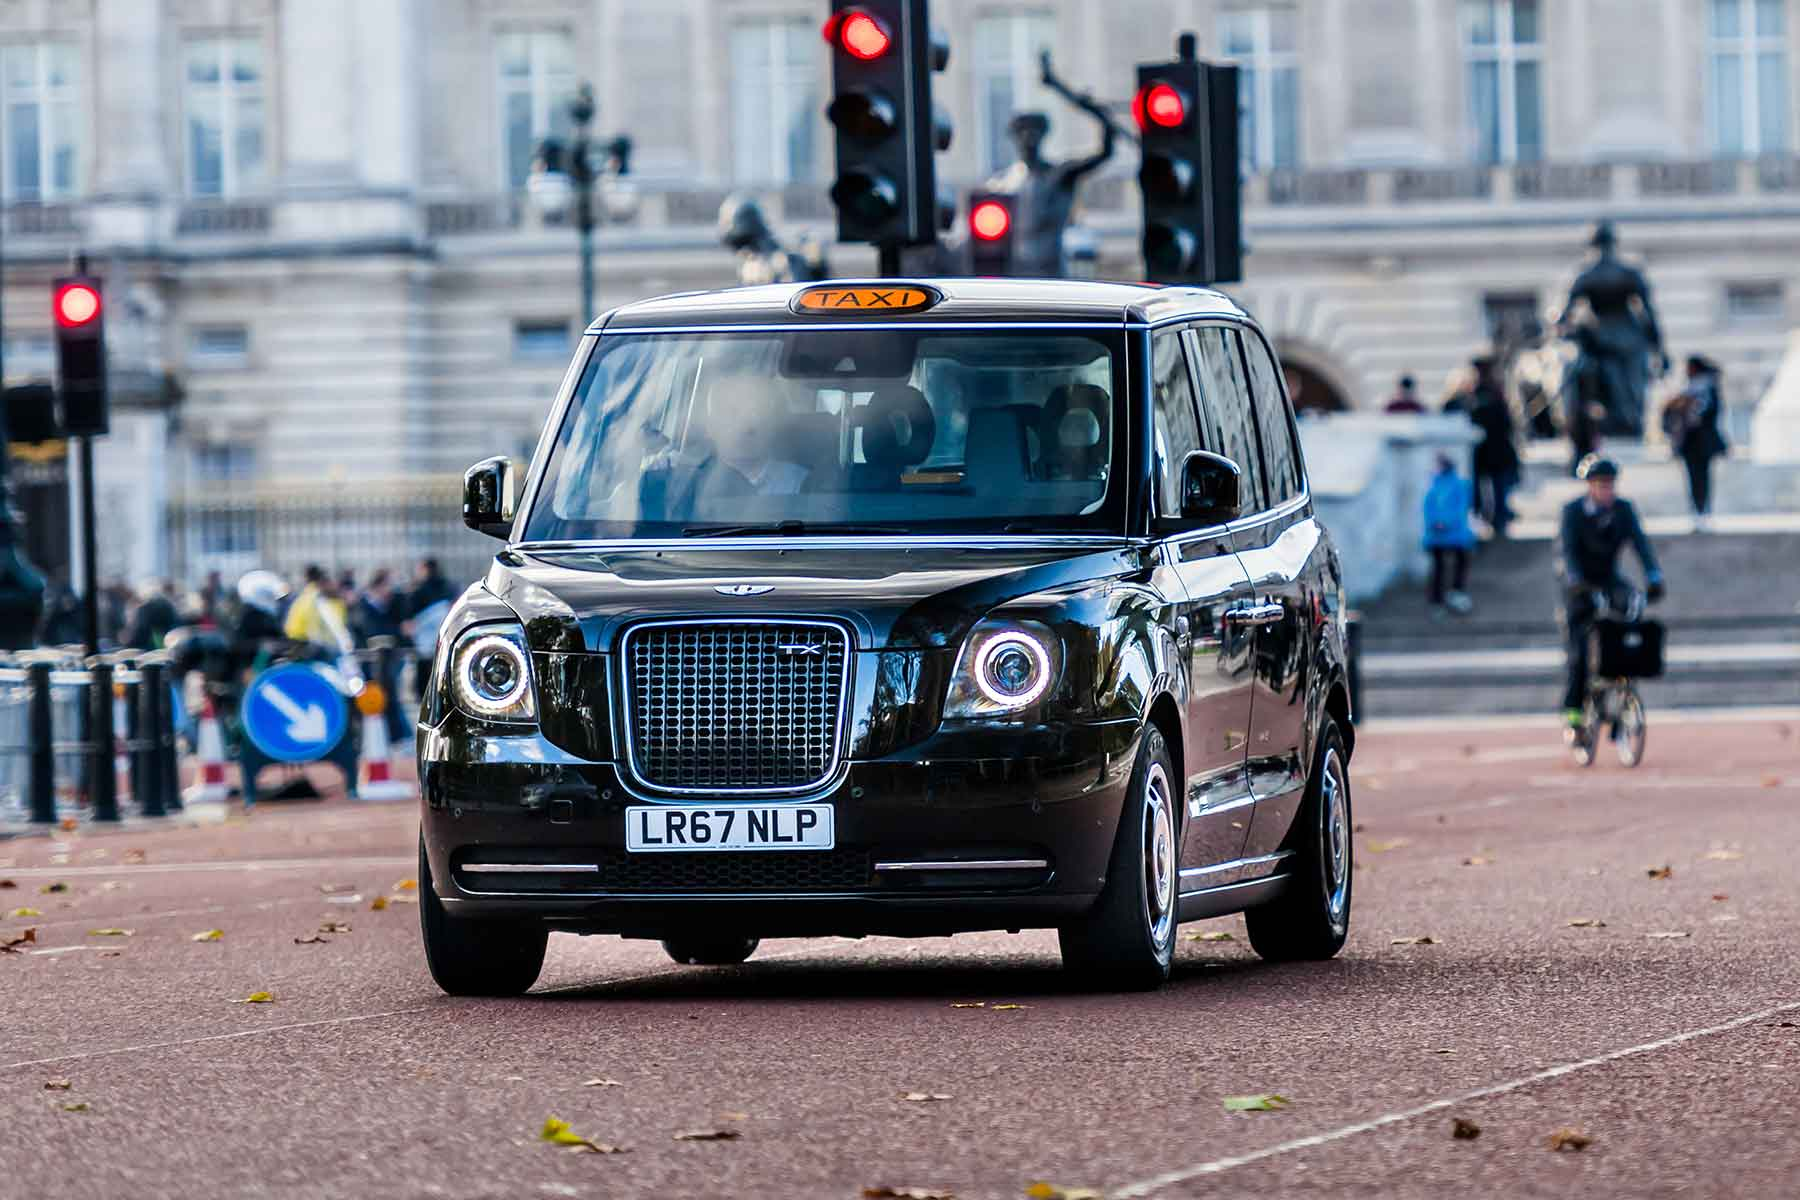 Taxi! First drive - and ride - in London's new hybrid ...